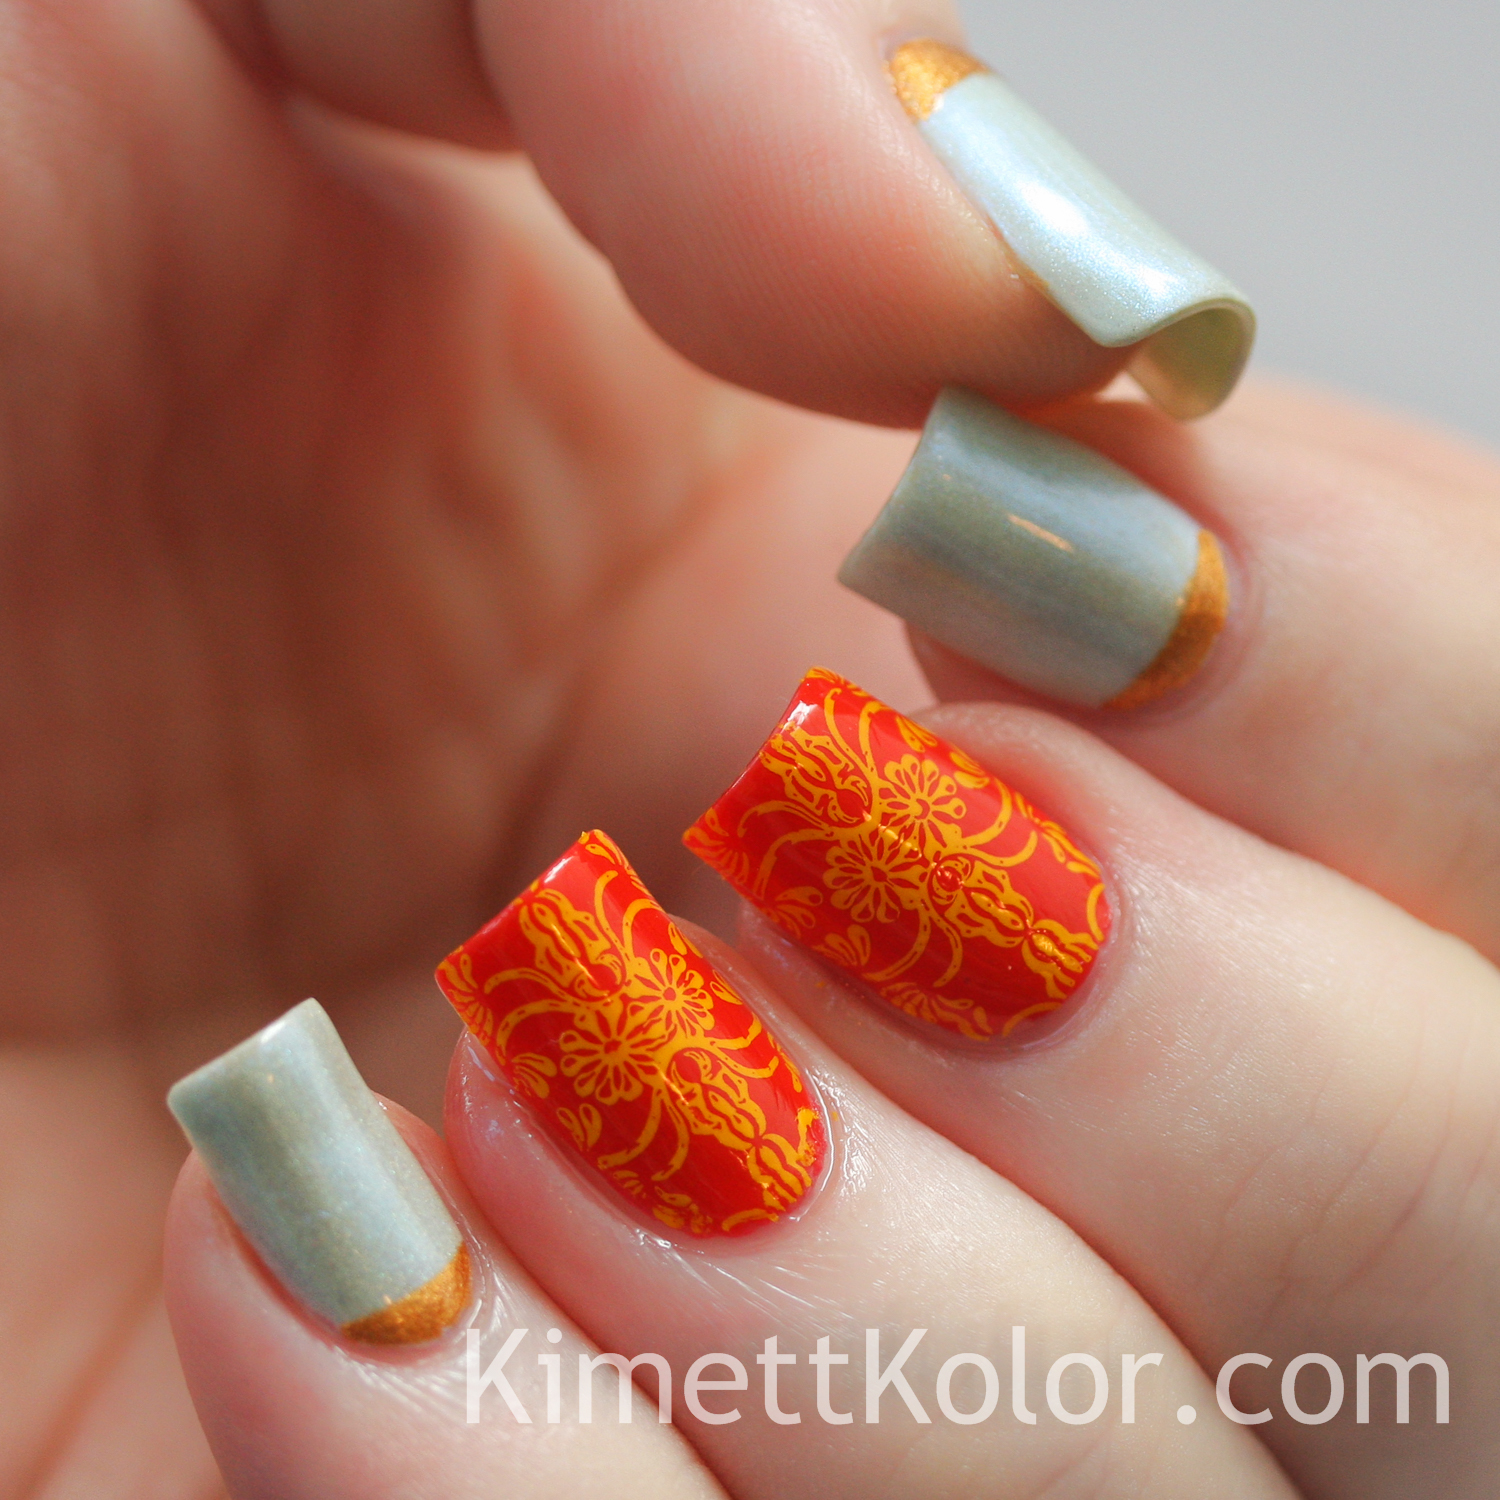 Theme of the Month: October Opal and Marigold